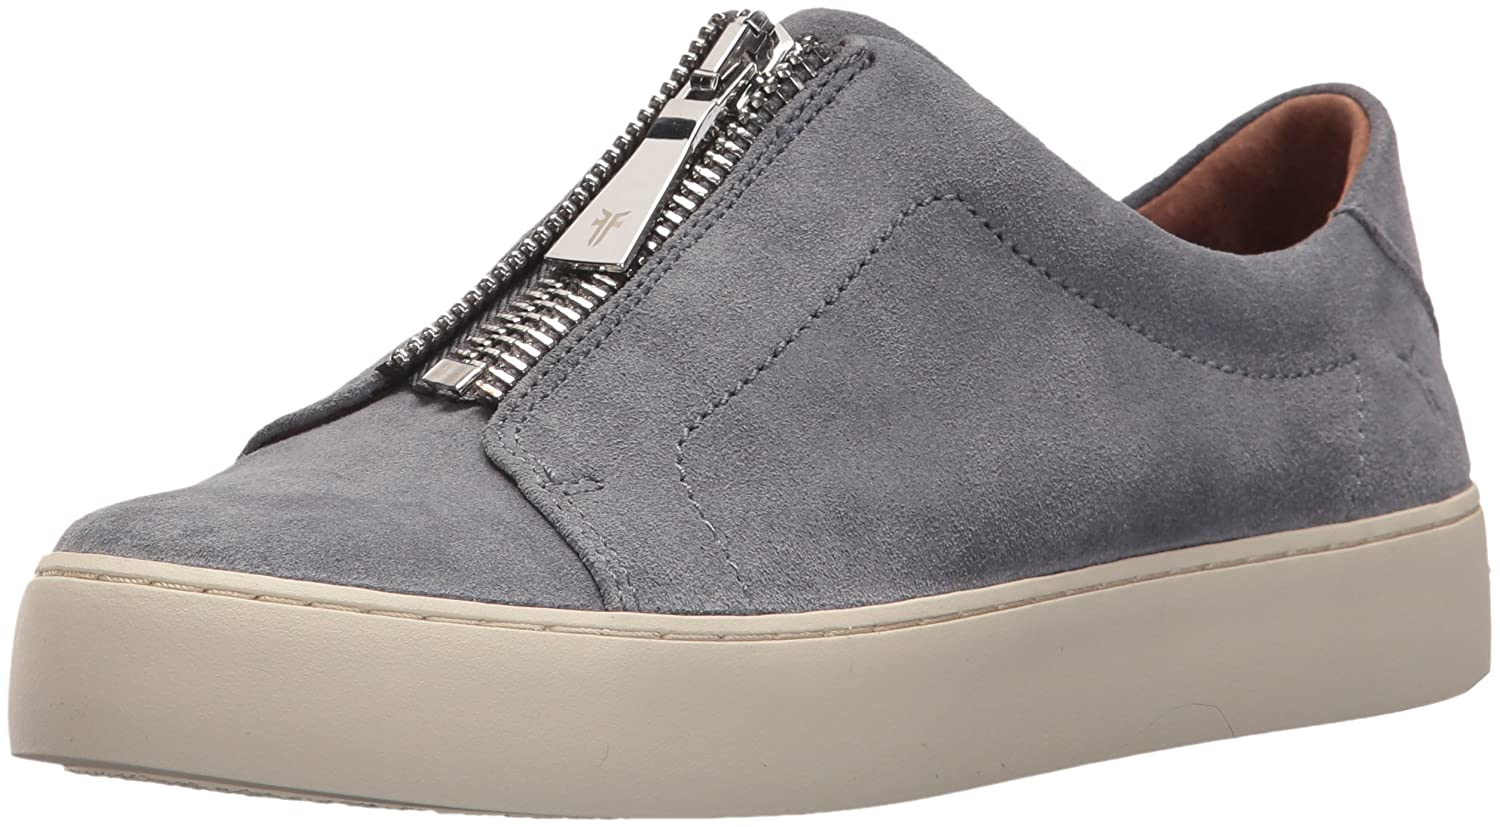 Jeans Frye Women's Lena Zip Low